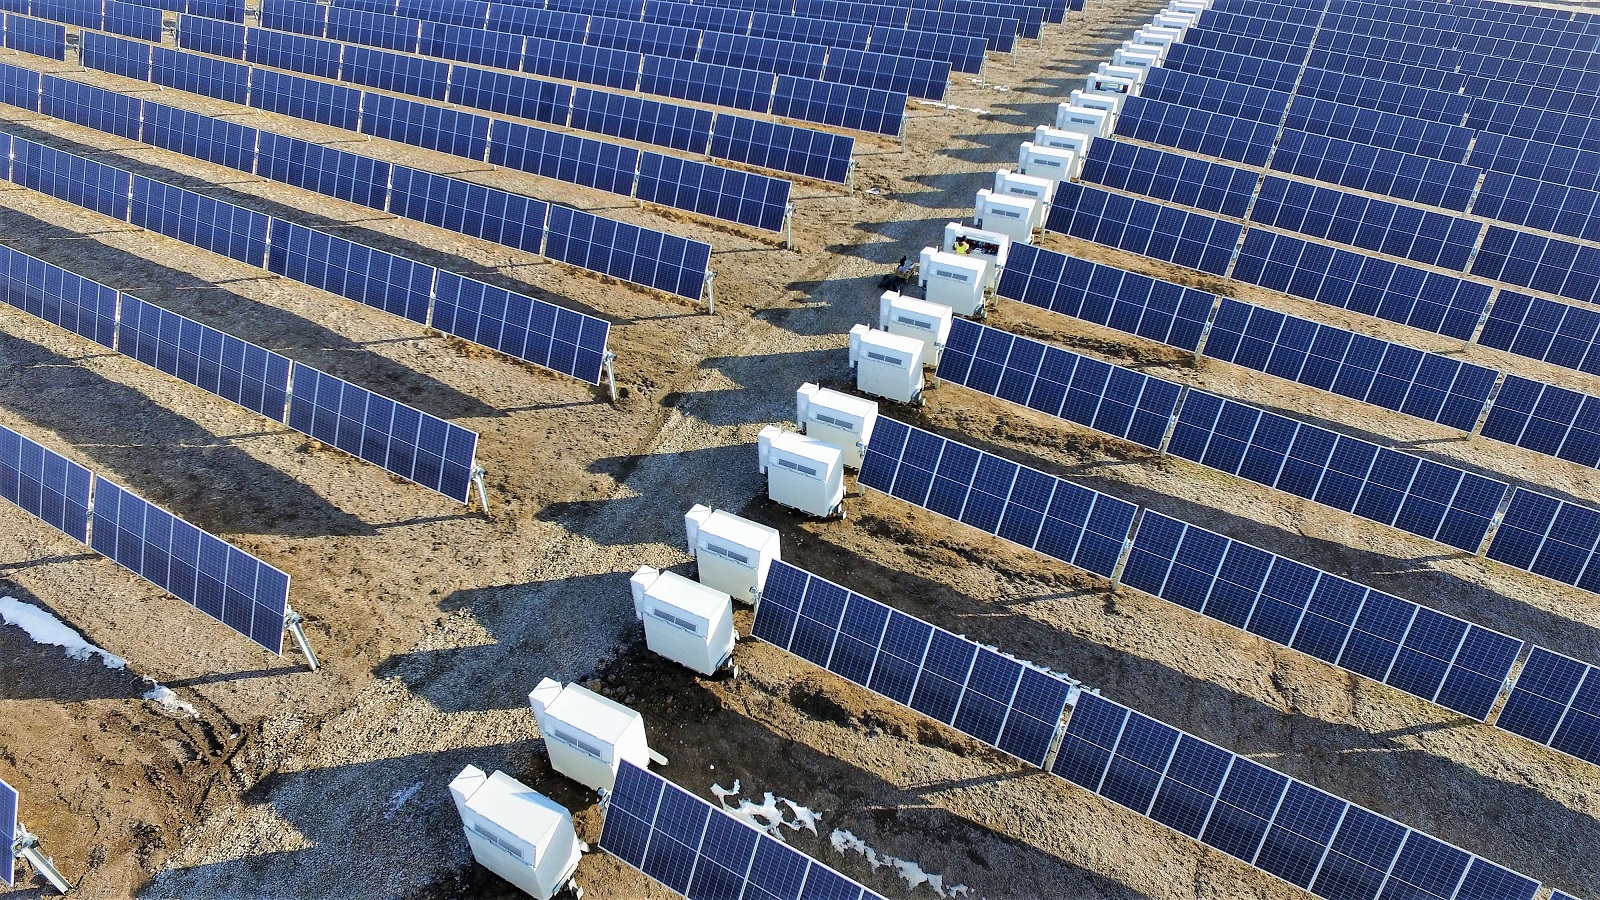 The combination of large-format panels with trackers will pose some challenges for PV system designers. Image Credit: Nextracker